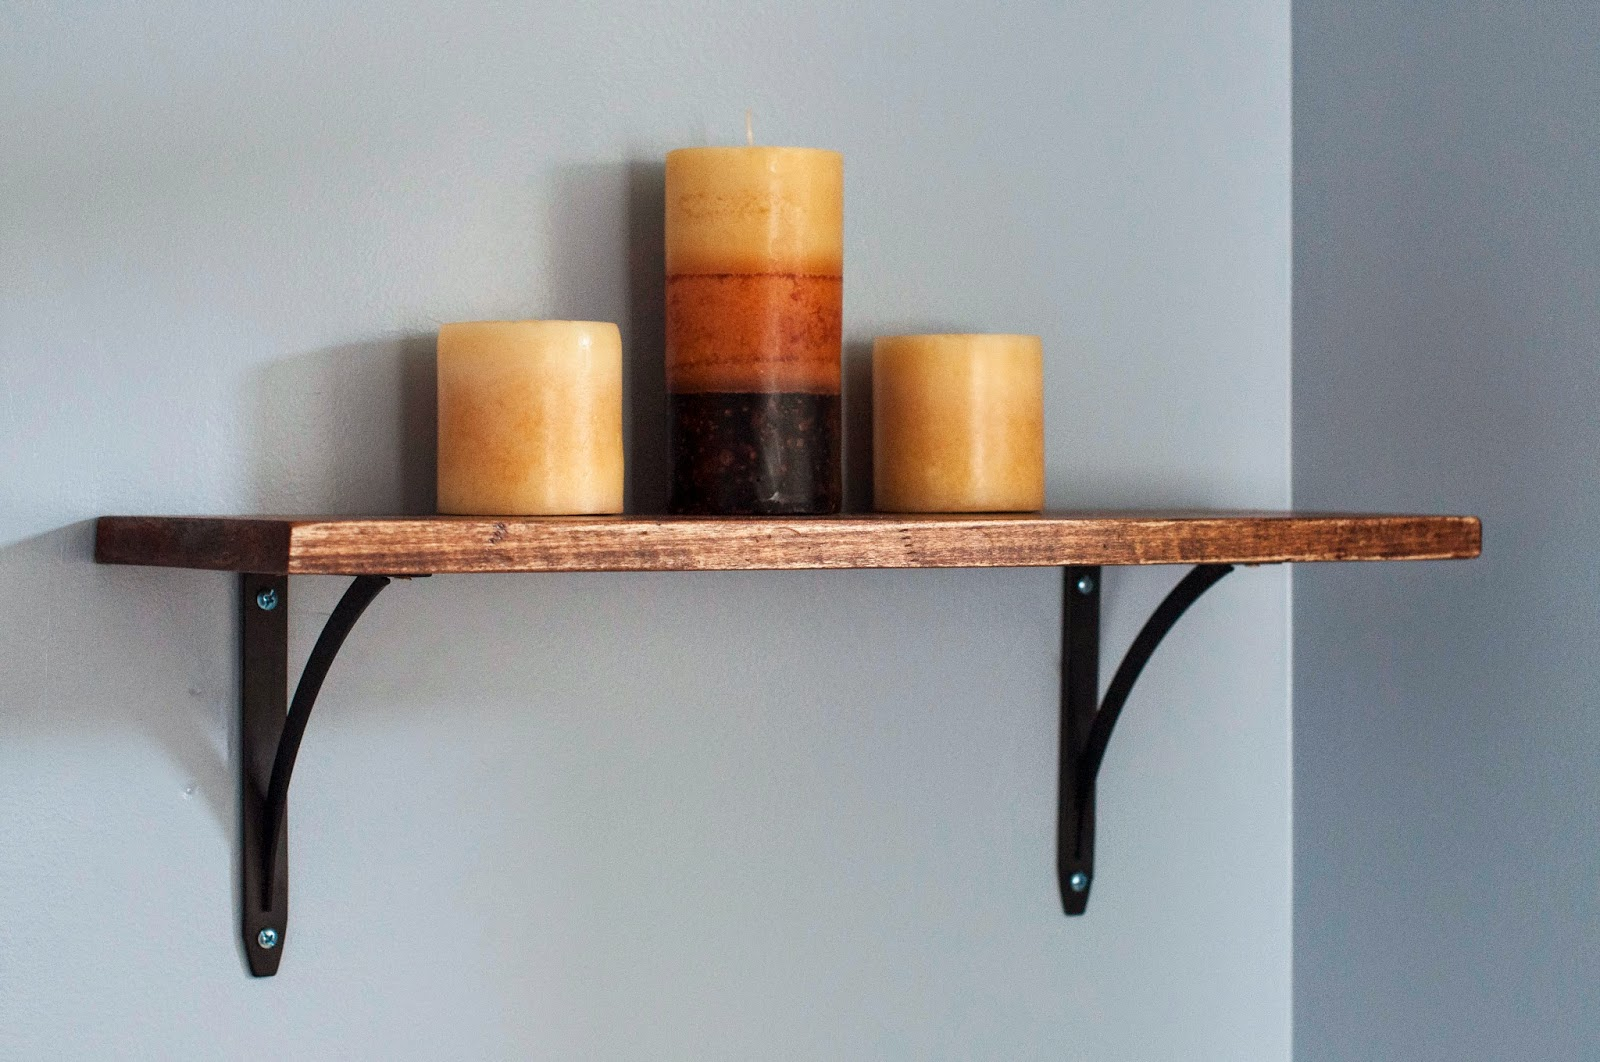 West Elm Hack, Weathered shelf, Reclaimed wood shelf